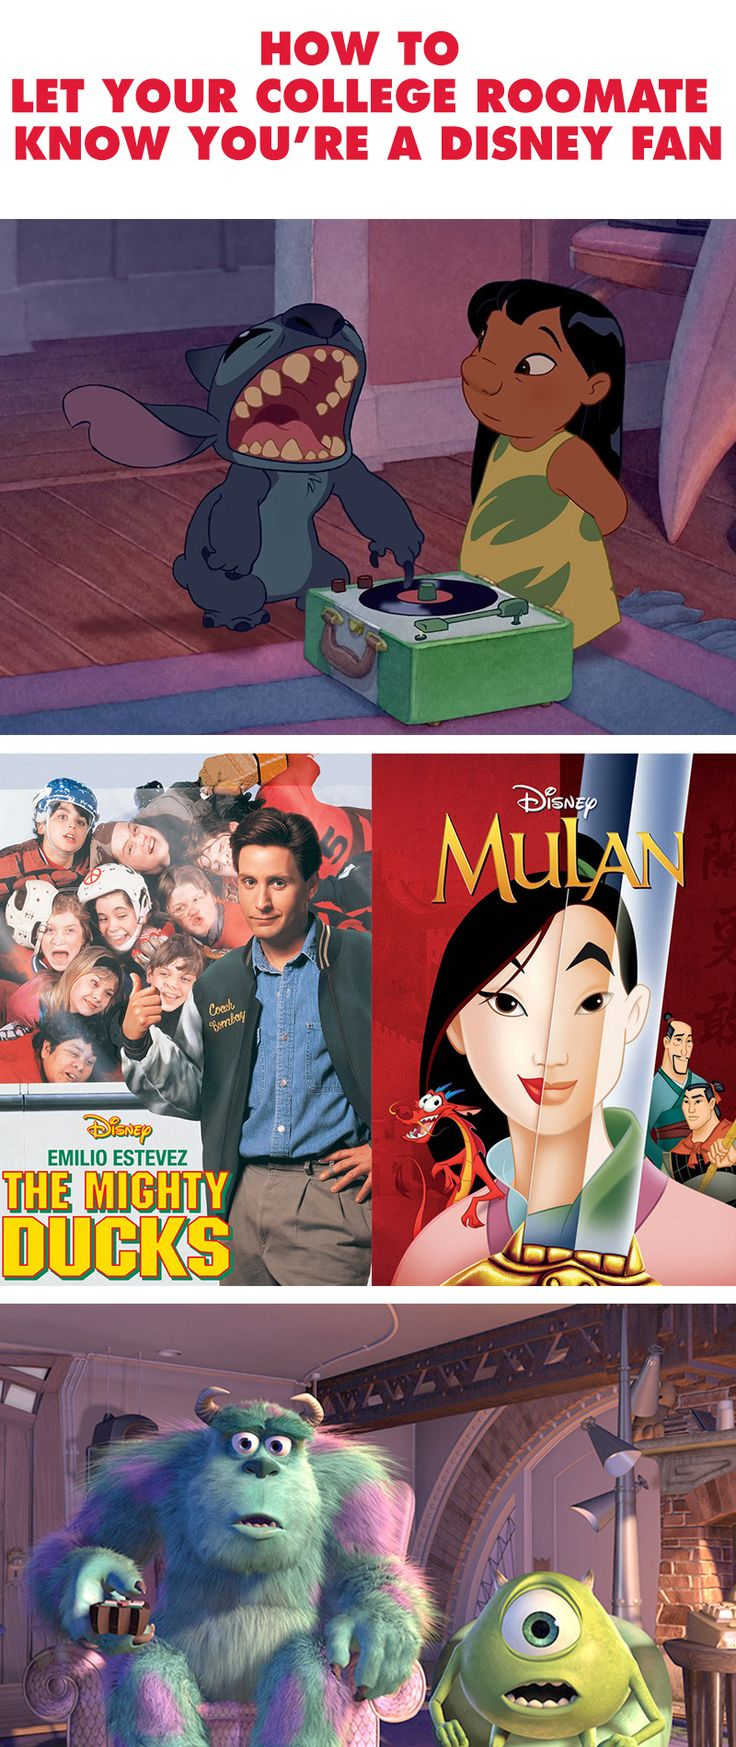 From your posters to your choice in music here is the ultimate guide to letting your college roommate know you're a Disney fan. If your Disney dorm room decor doesn't give it away on day one.